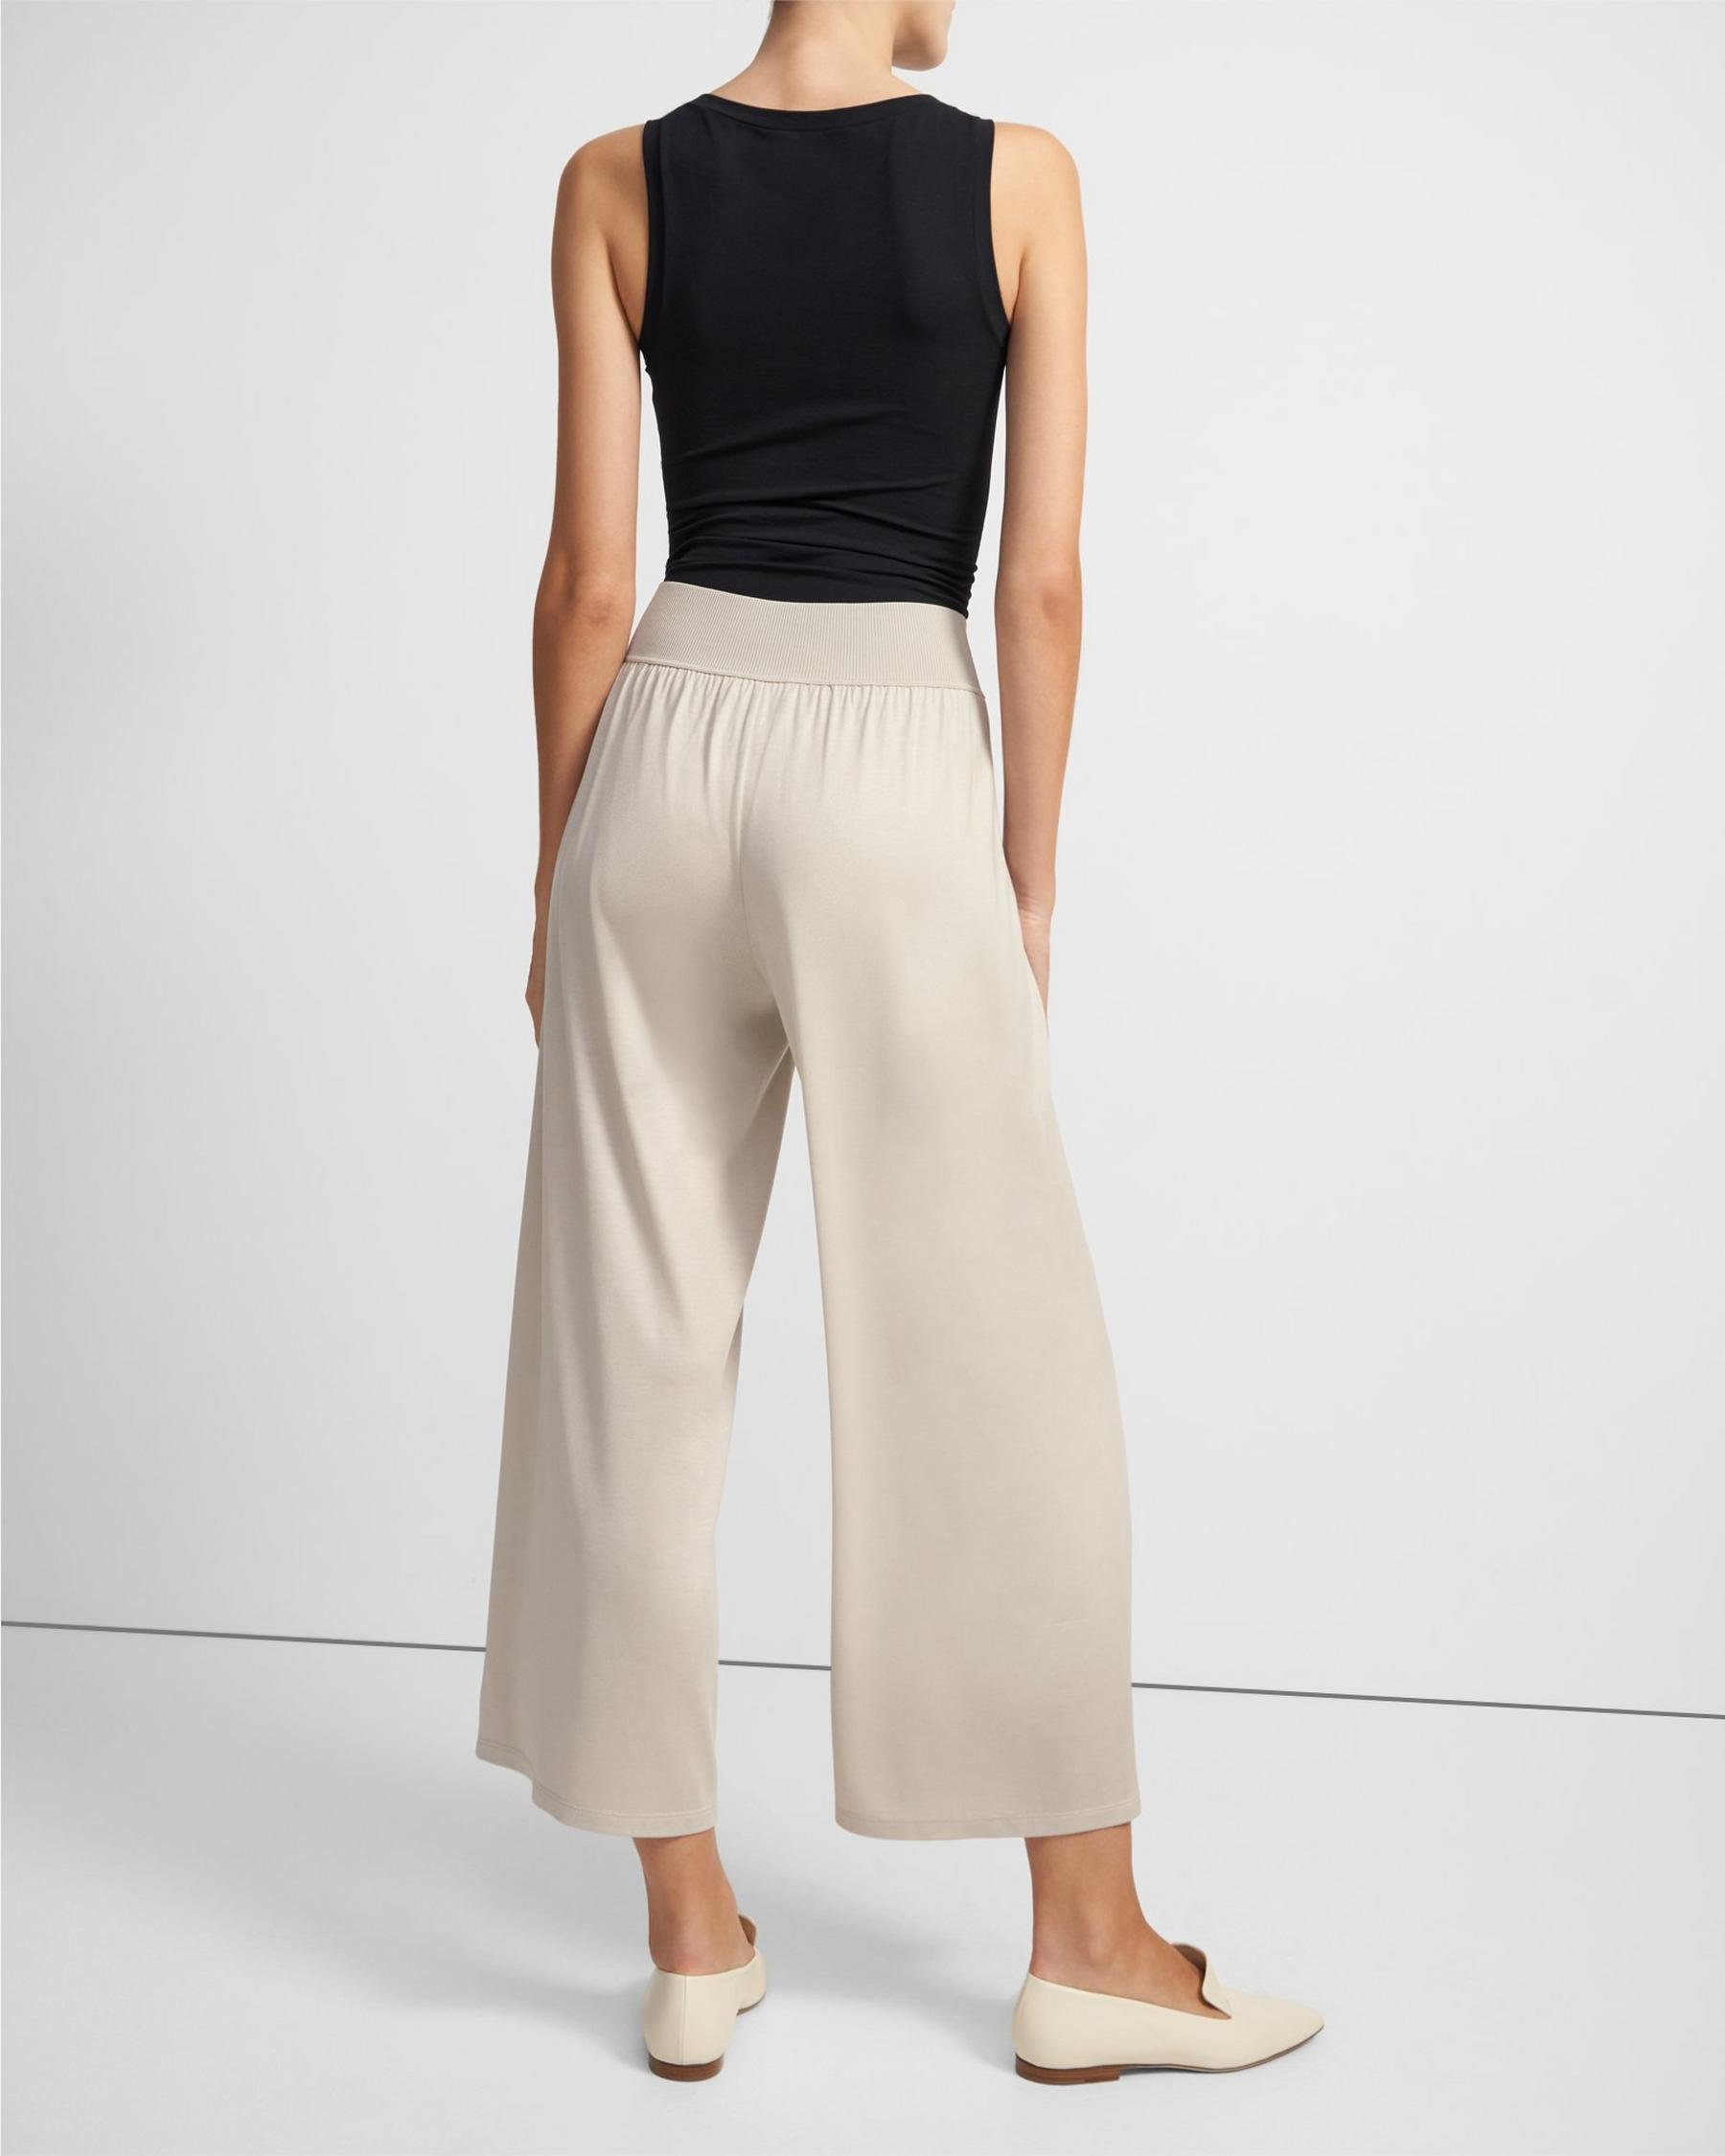 Ribbed Waist Pant in Silk Jersey 2